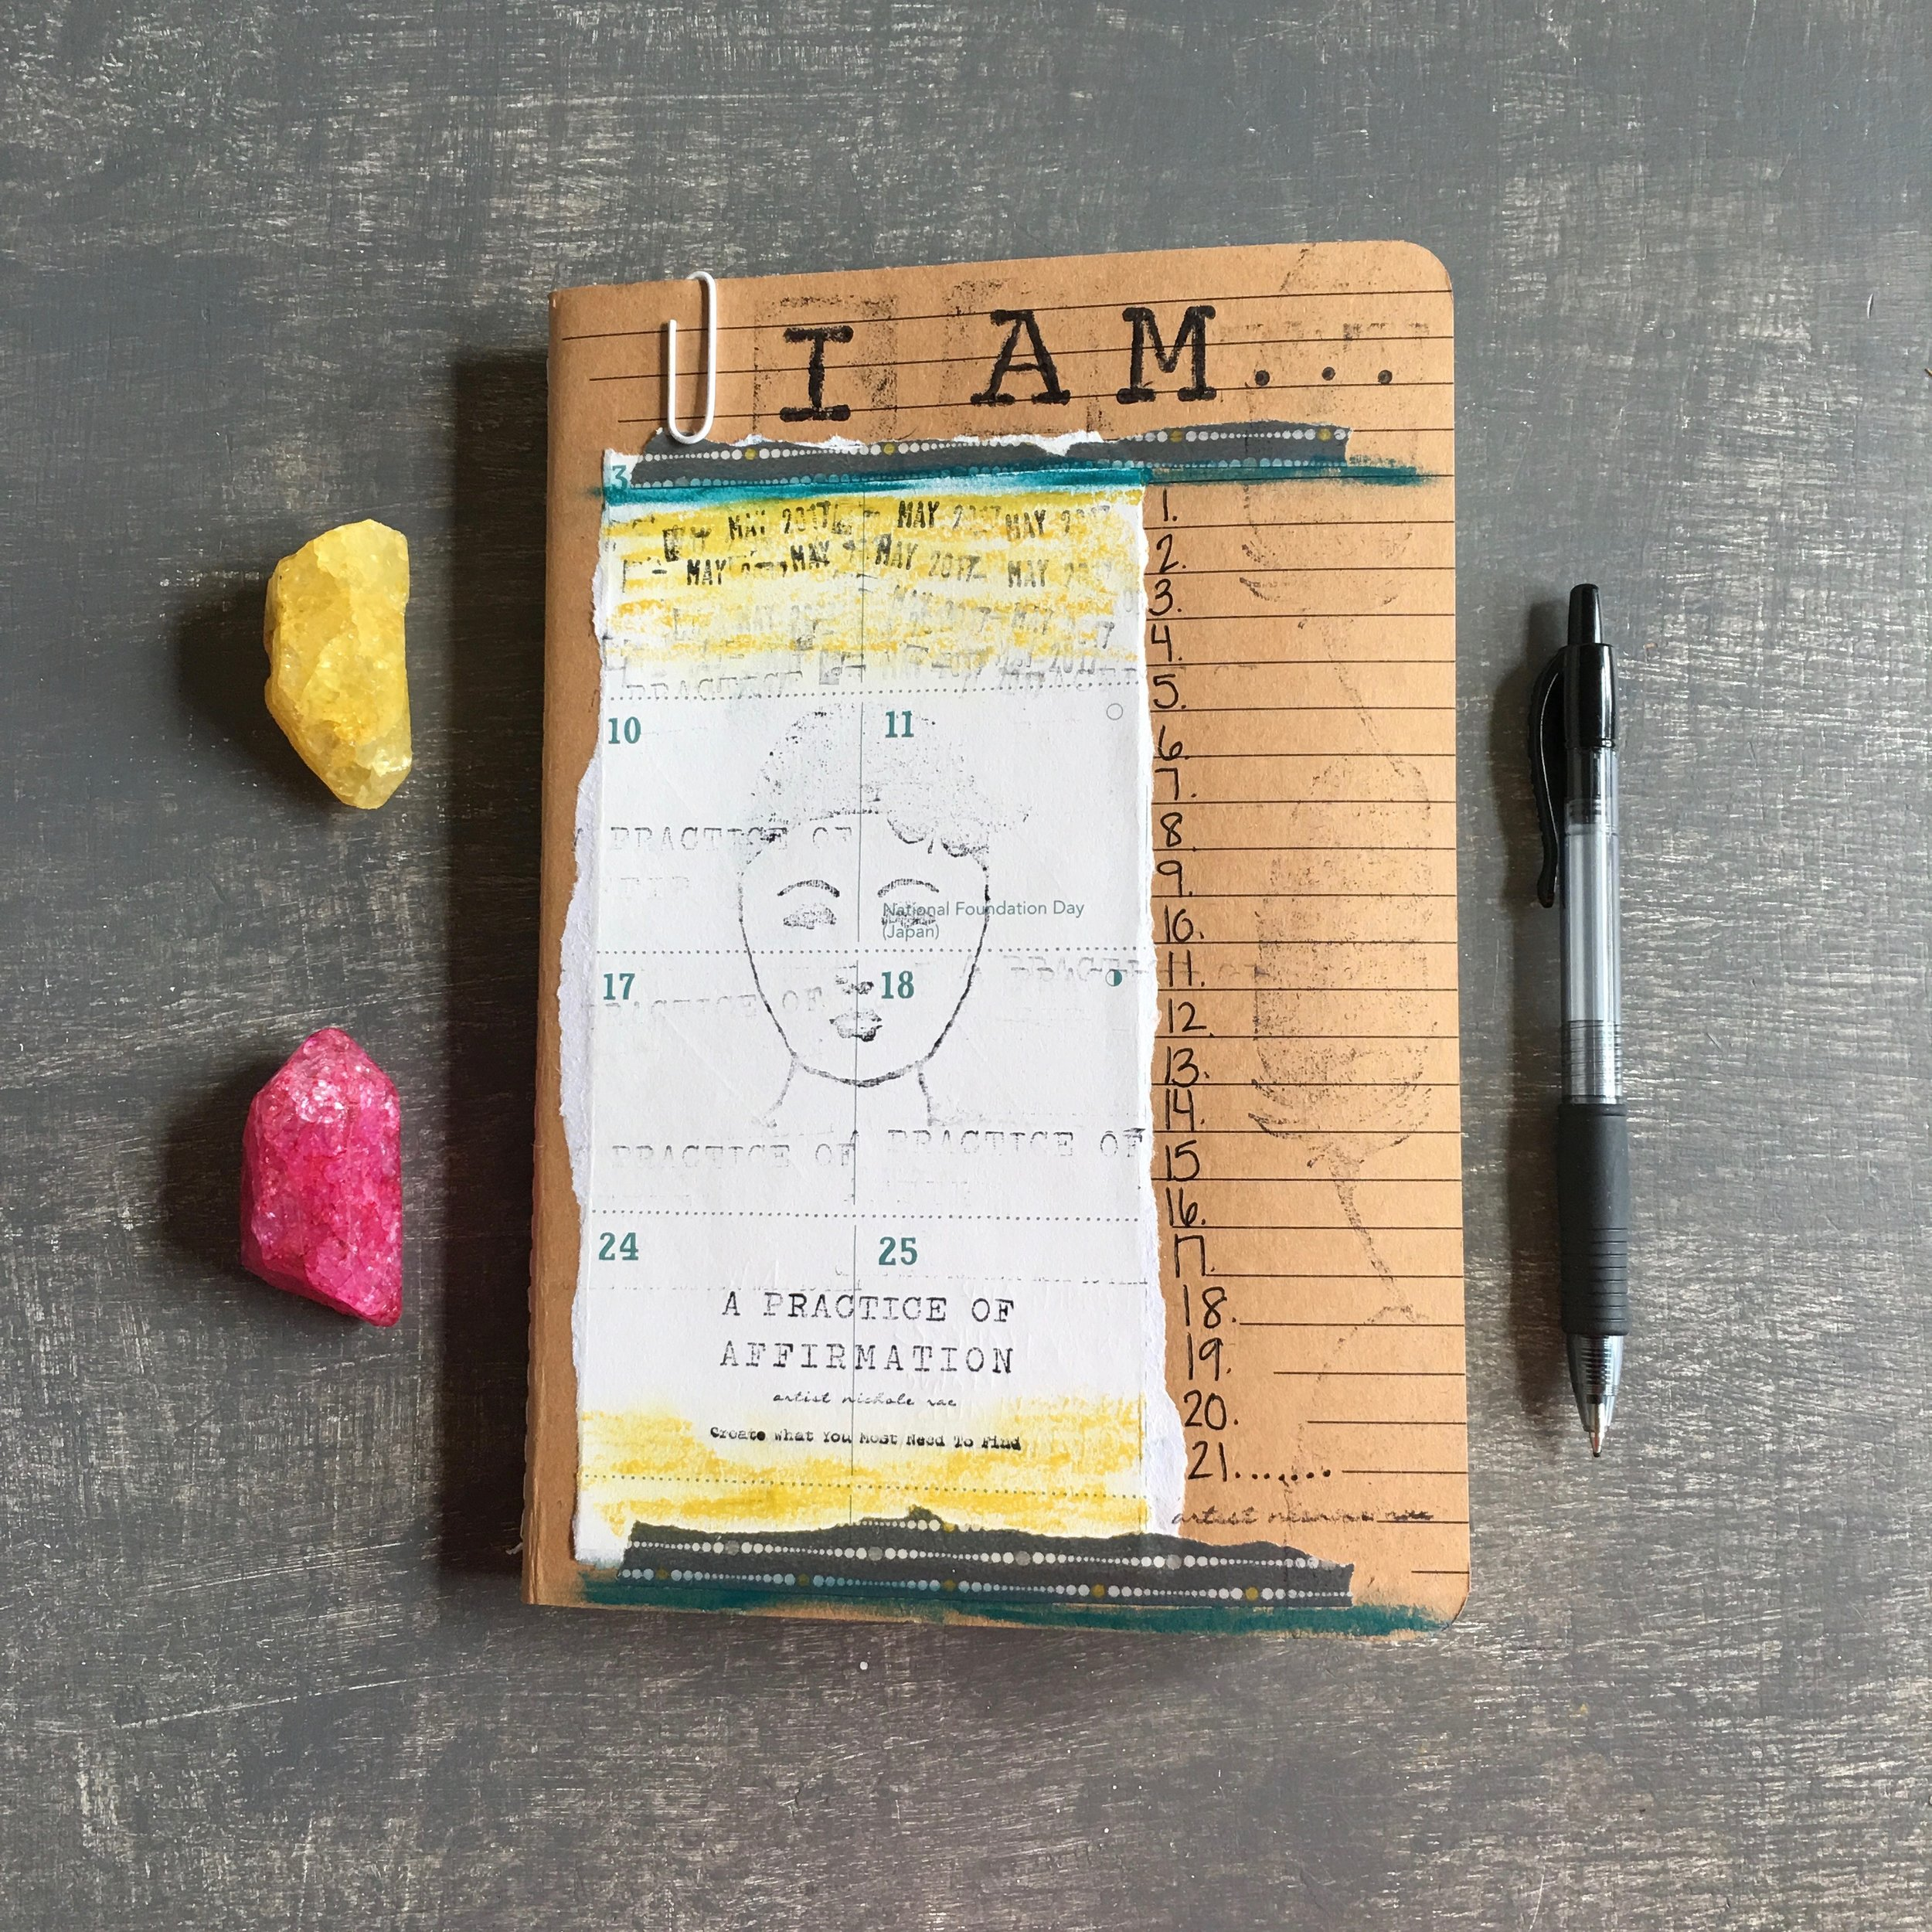 A PRACTICE OF I AM AFFIRMATION JOURNALING COURSE  - Inspire a daily practice using I AM affirmations to inspire your creative spirit in 8 areas of you life. We will explore journaling I AM affirmations and cultivating an outspoken practice as well. Supply kit Included + Digital E-guide Course.DETAILS2.5 HOURS | $40  PER PERSON | INCLUDES ALL SUPPLIESPRIVATE WORKSHOP: MIN. 3 GUESTSWORKSHOP CAPACITY @ MY STUDIO: 6OFF SITE LOCATION:  UP TO 30 GUESTS LARGER GROUPS CAN BE ACCOMMODATED